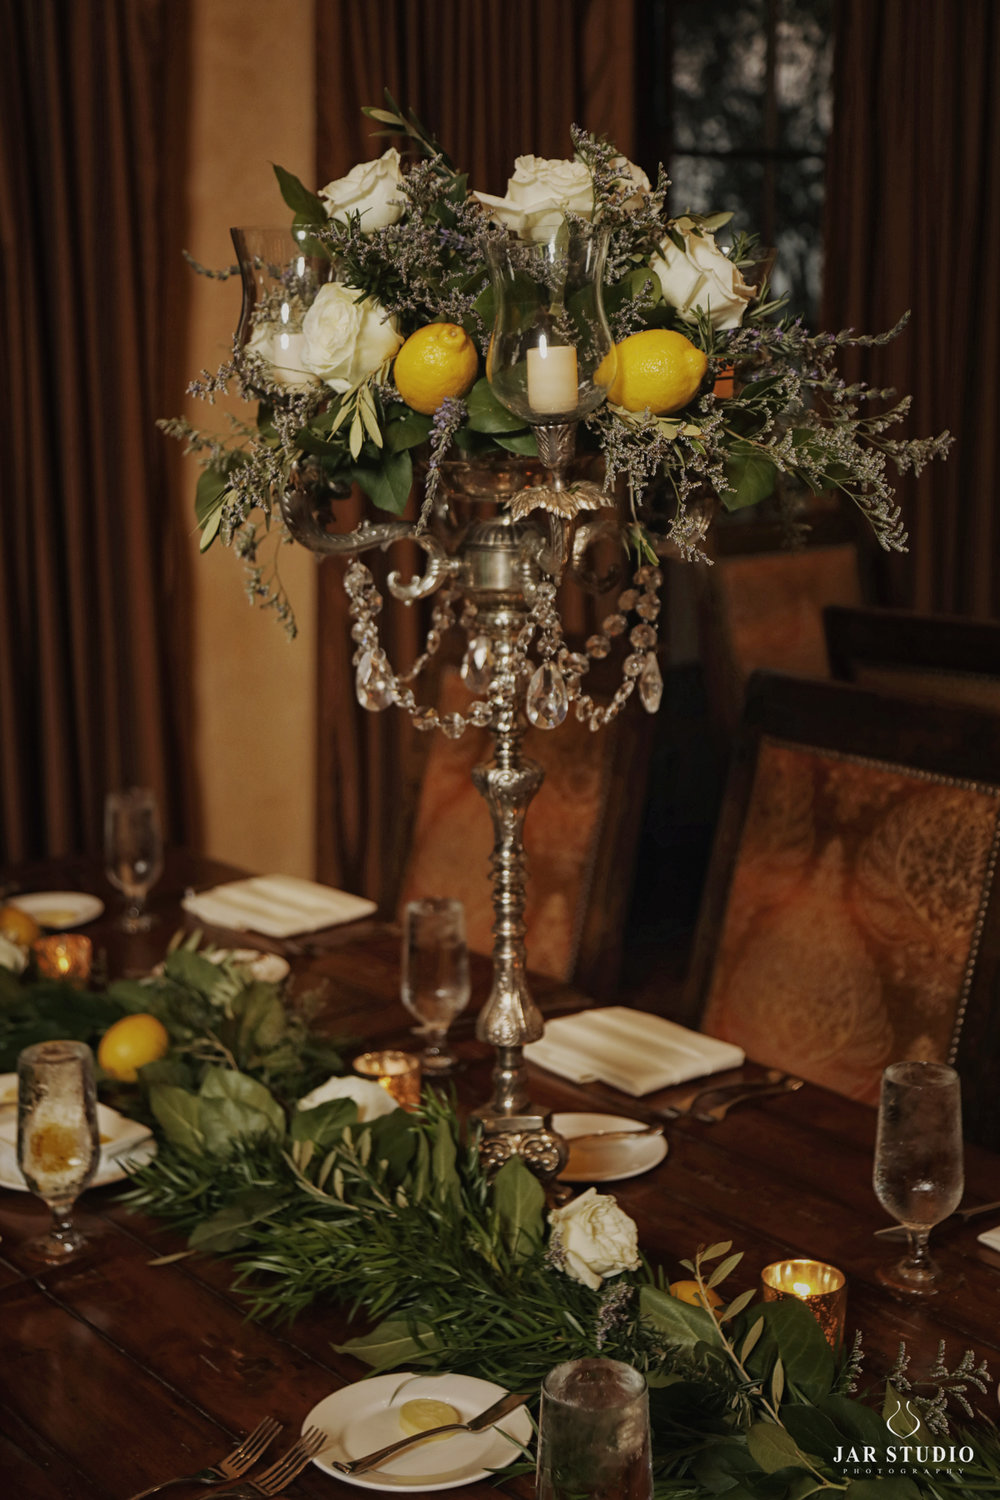 33-dinner-table-wedding-reception-elegant-candles-jarstudio.jpg